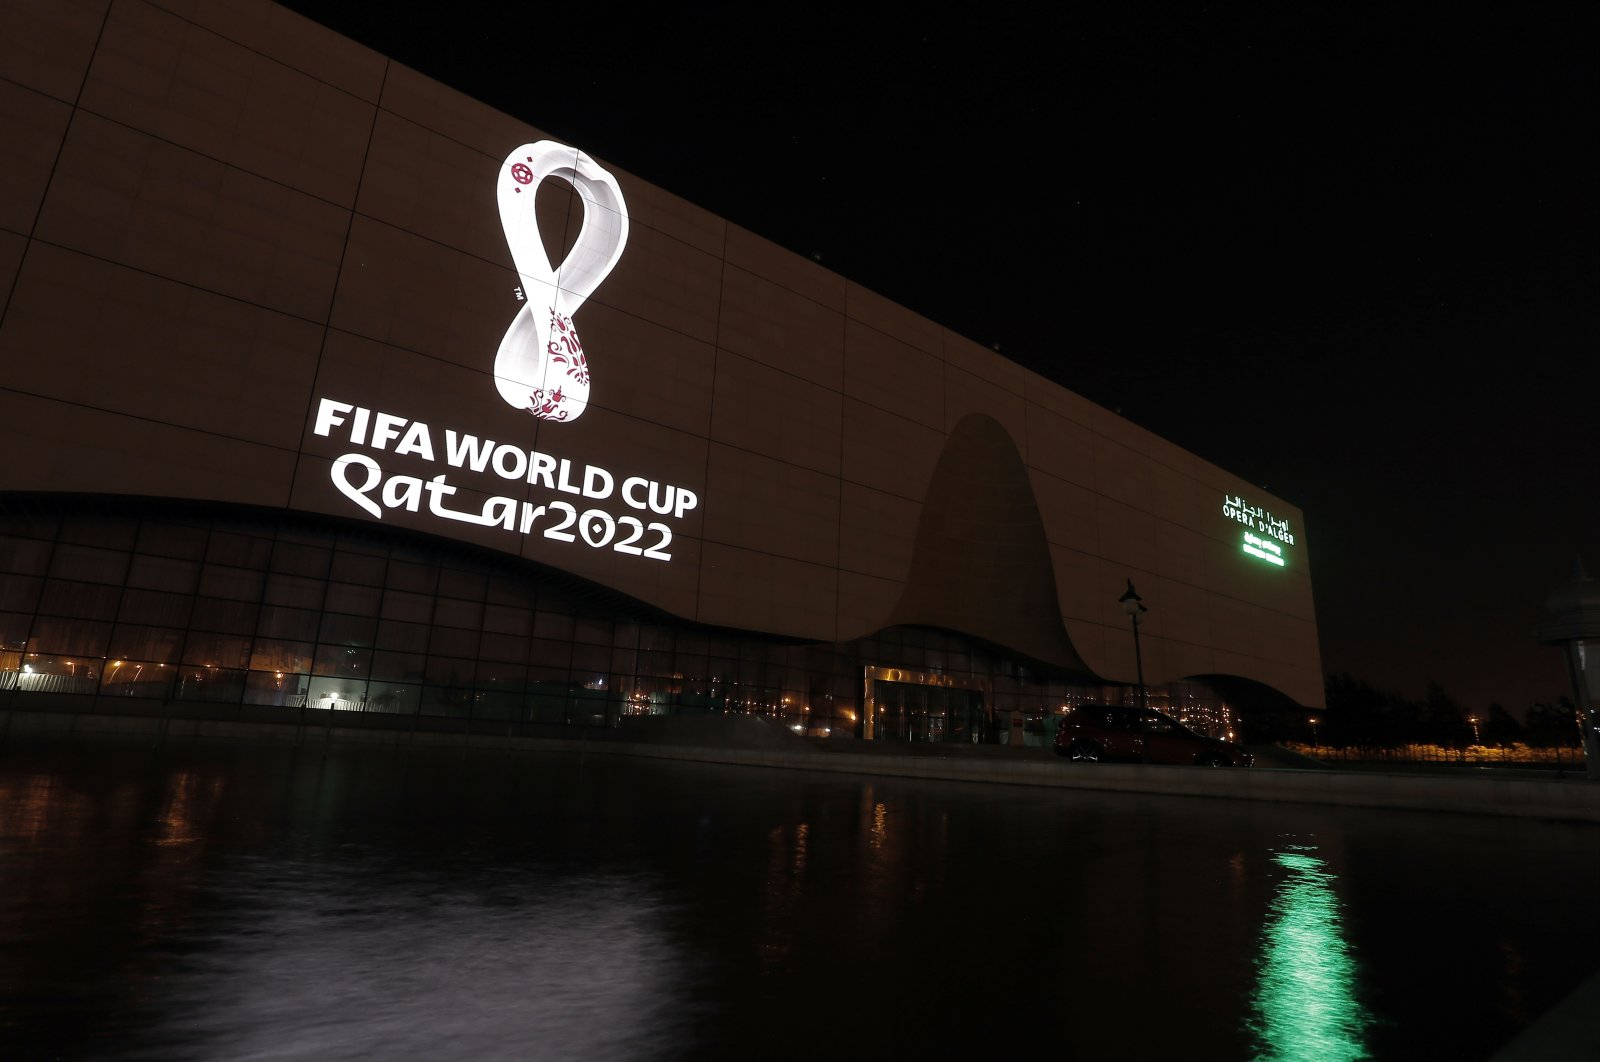 The 2022 Qatar World Cup logo is projected on the opera house of Algiers, Algeria, Sept. 3, 2019. (AP Photo)